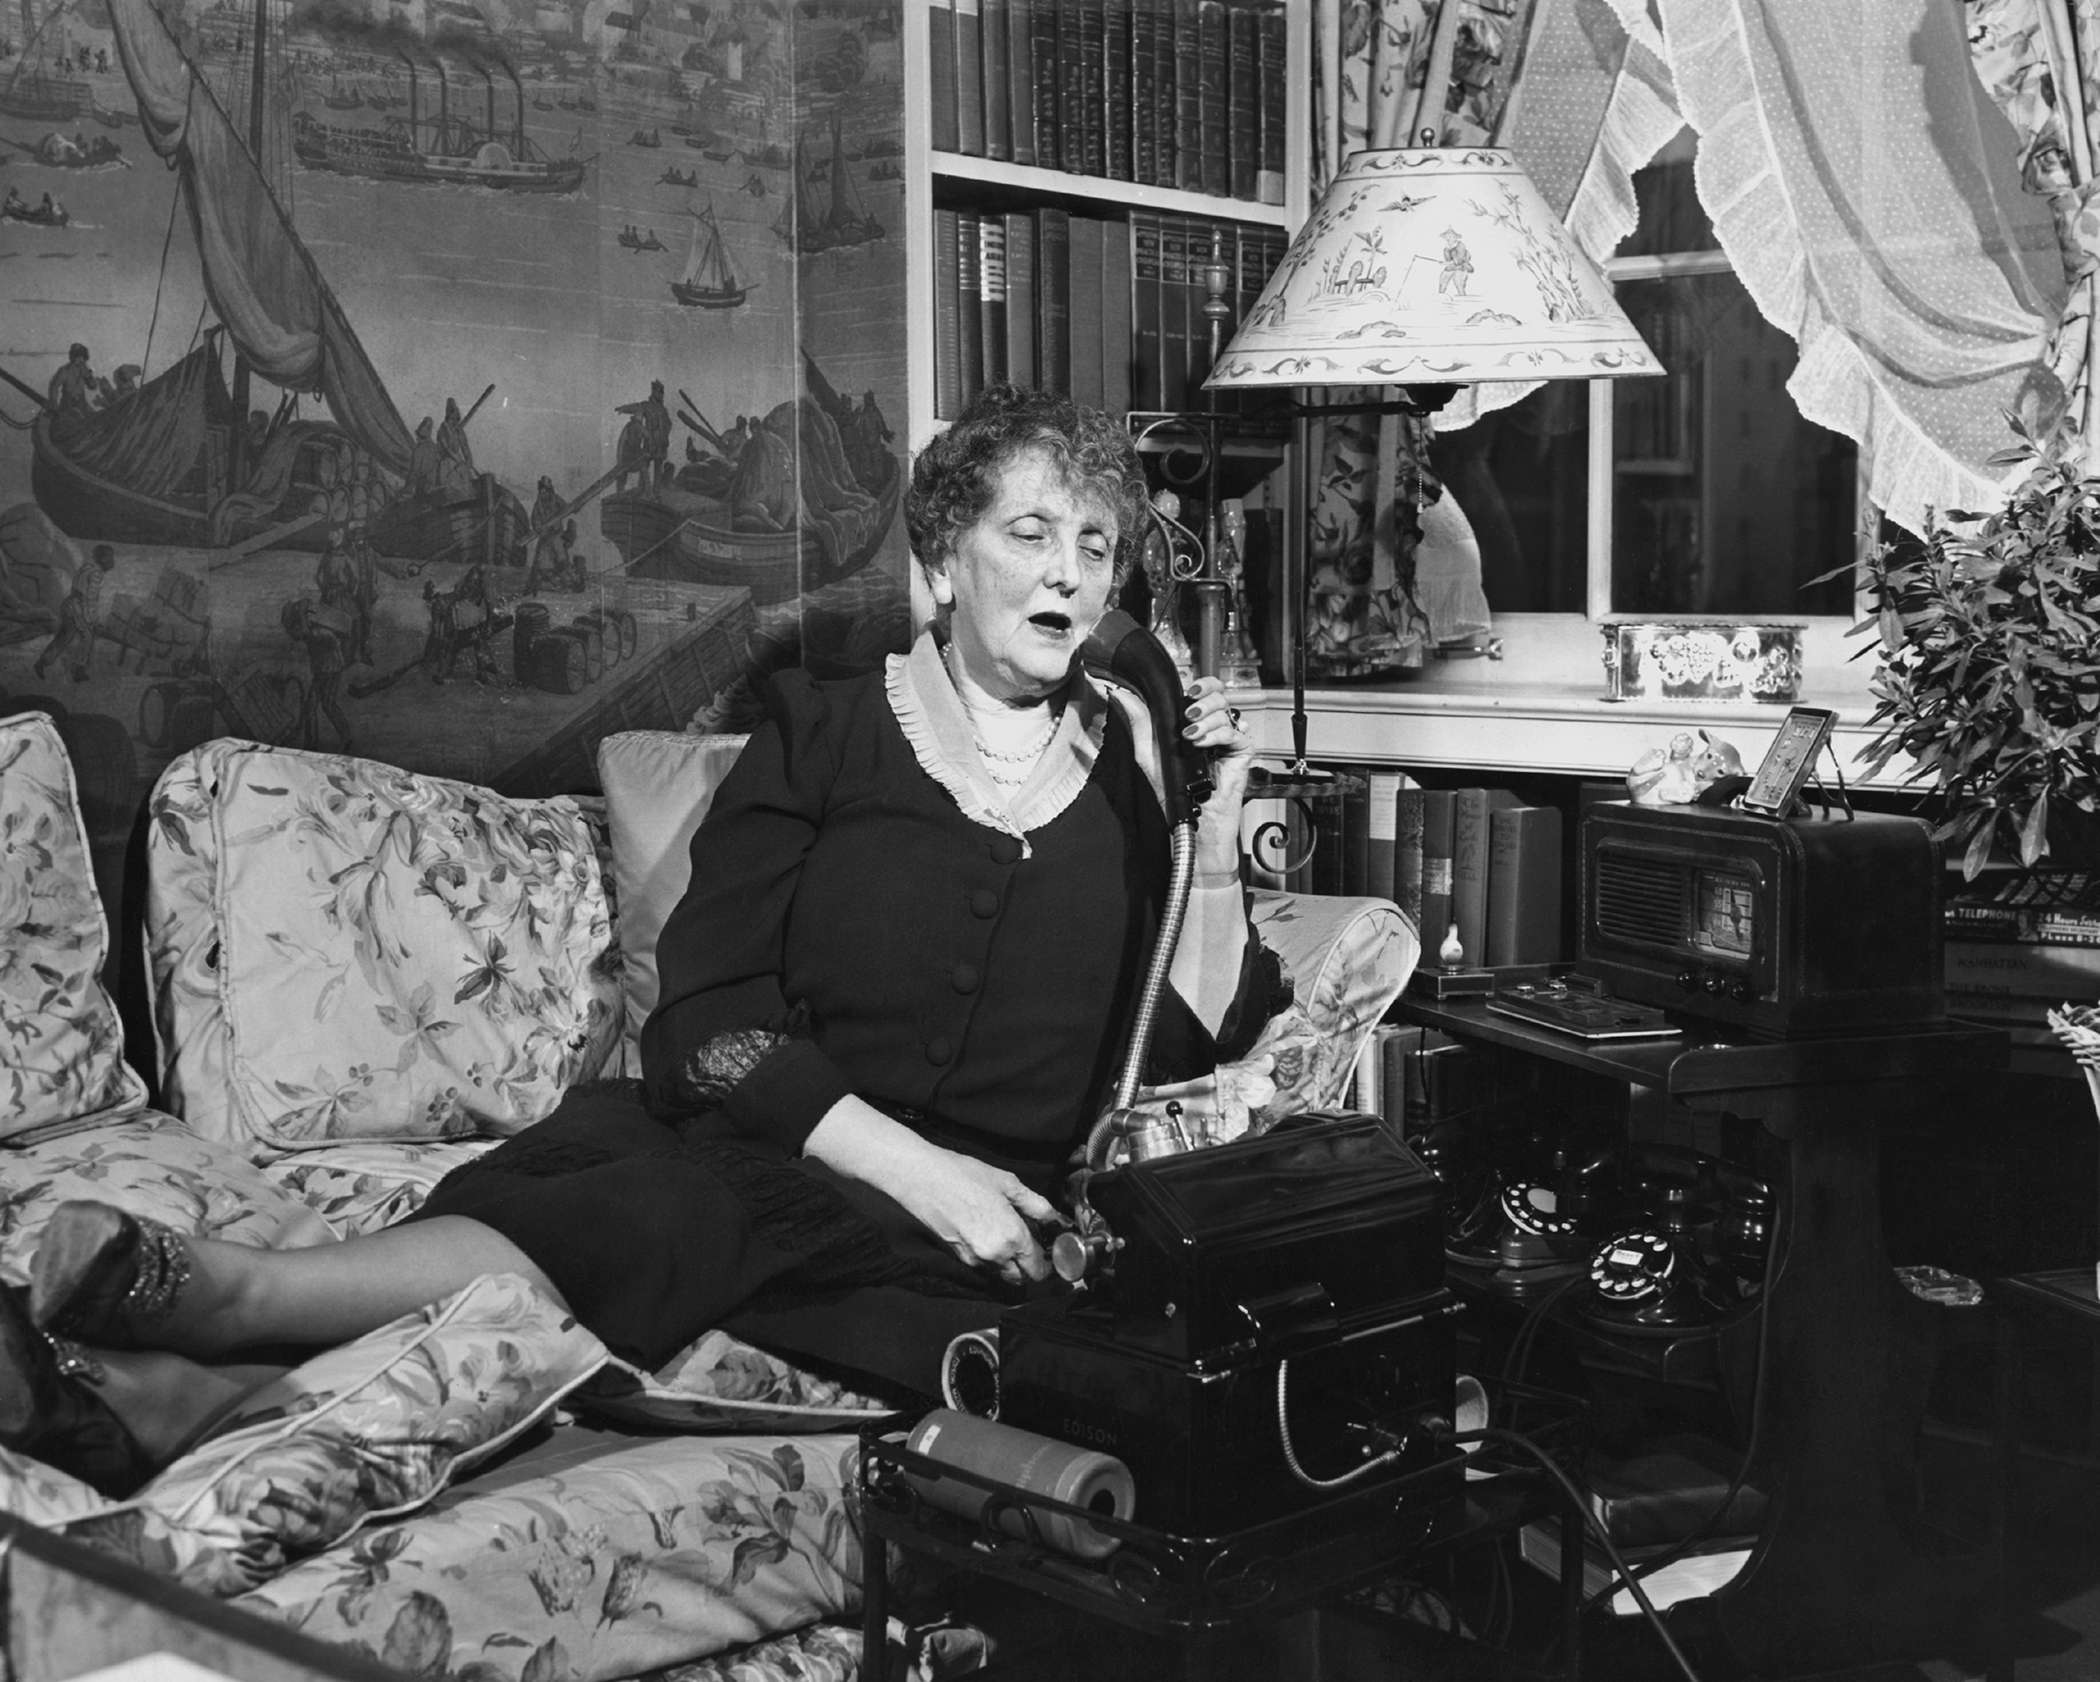 Writer Emily Post (1872-1960) pictured in her living room speaking on the telephone, USA, circa 1940.